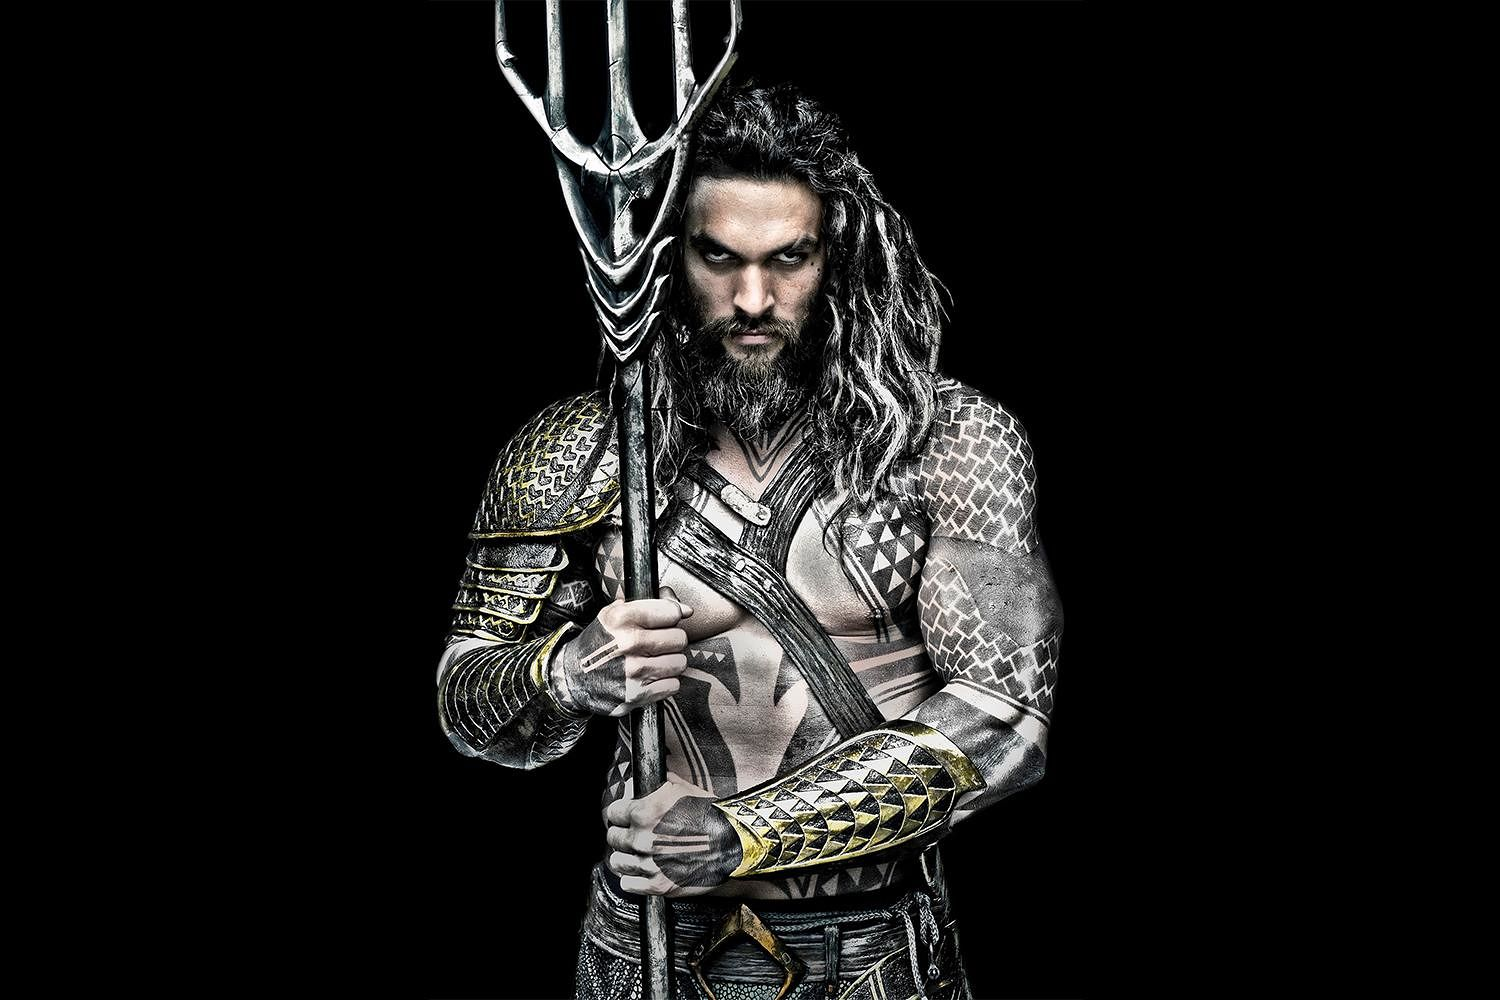 aquaman-star-jason-momoa-on-hi-tech-workout-outfit_asuw